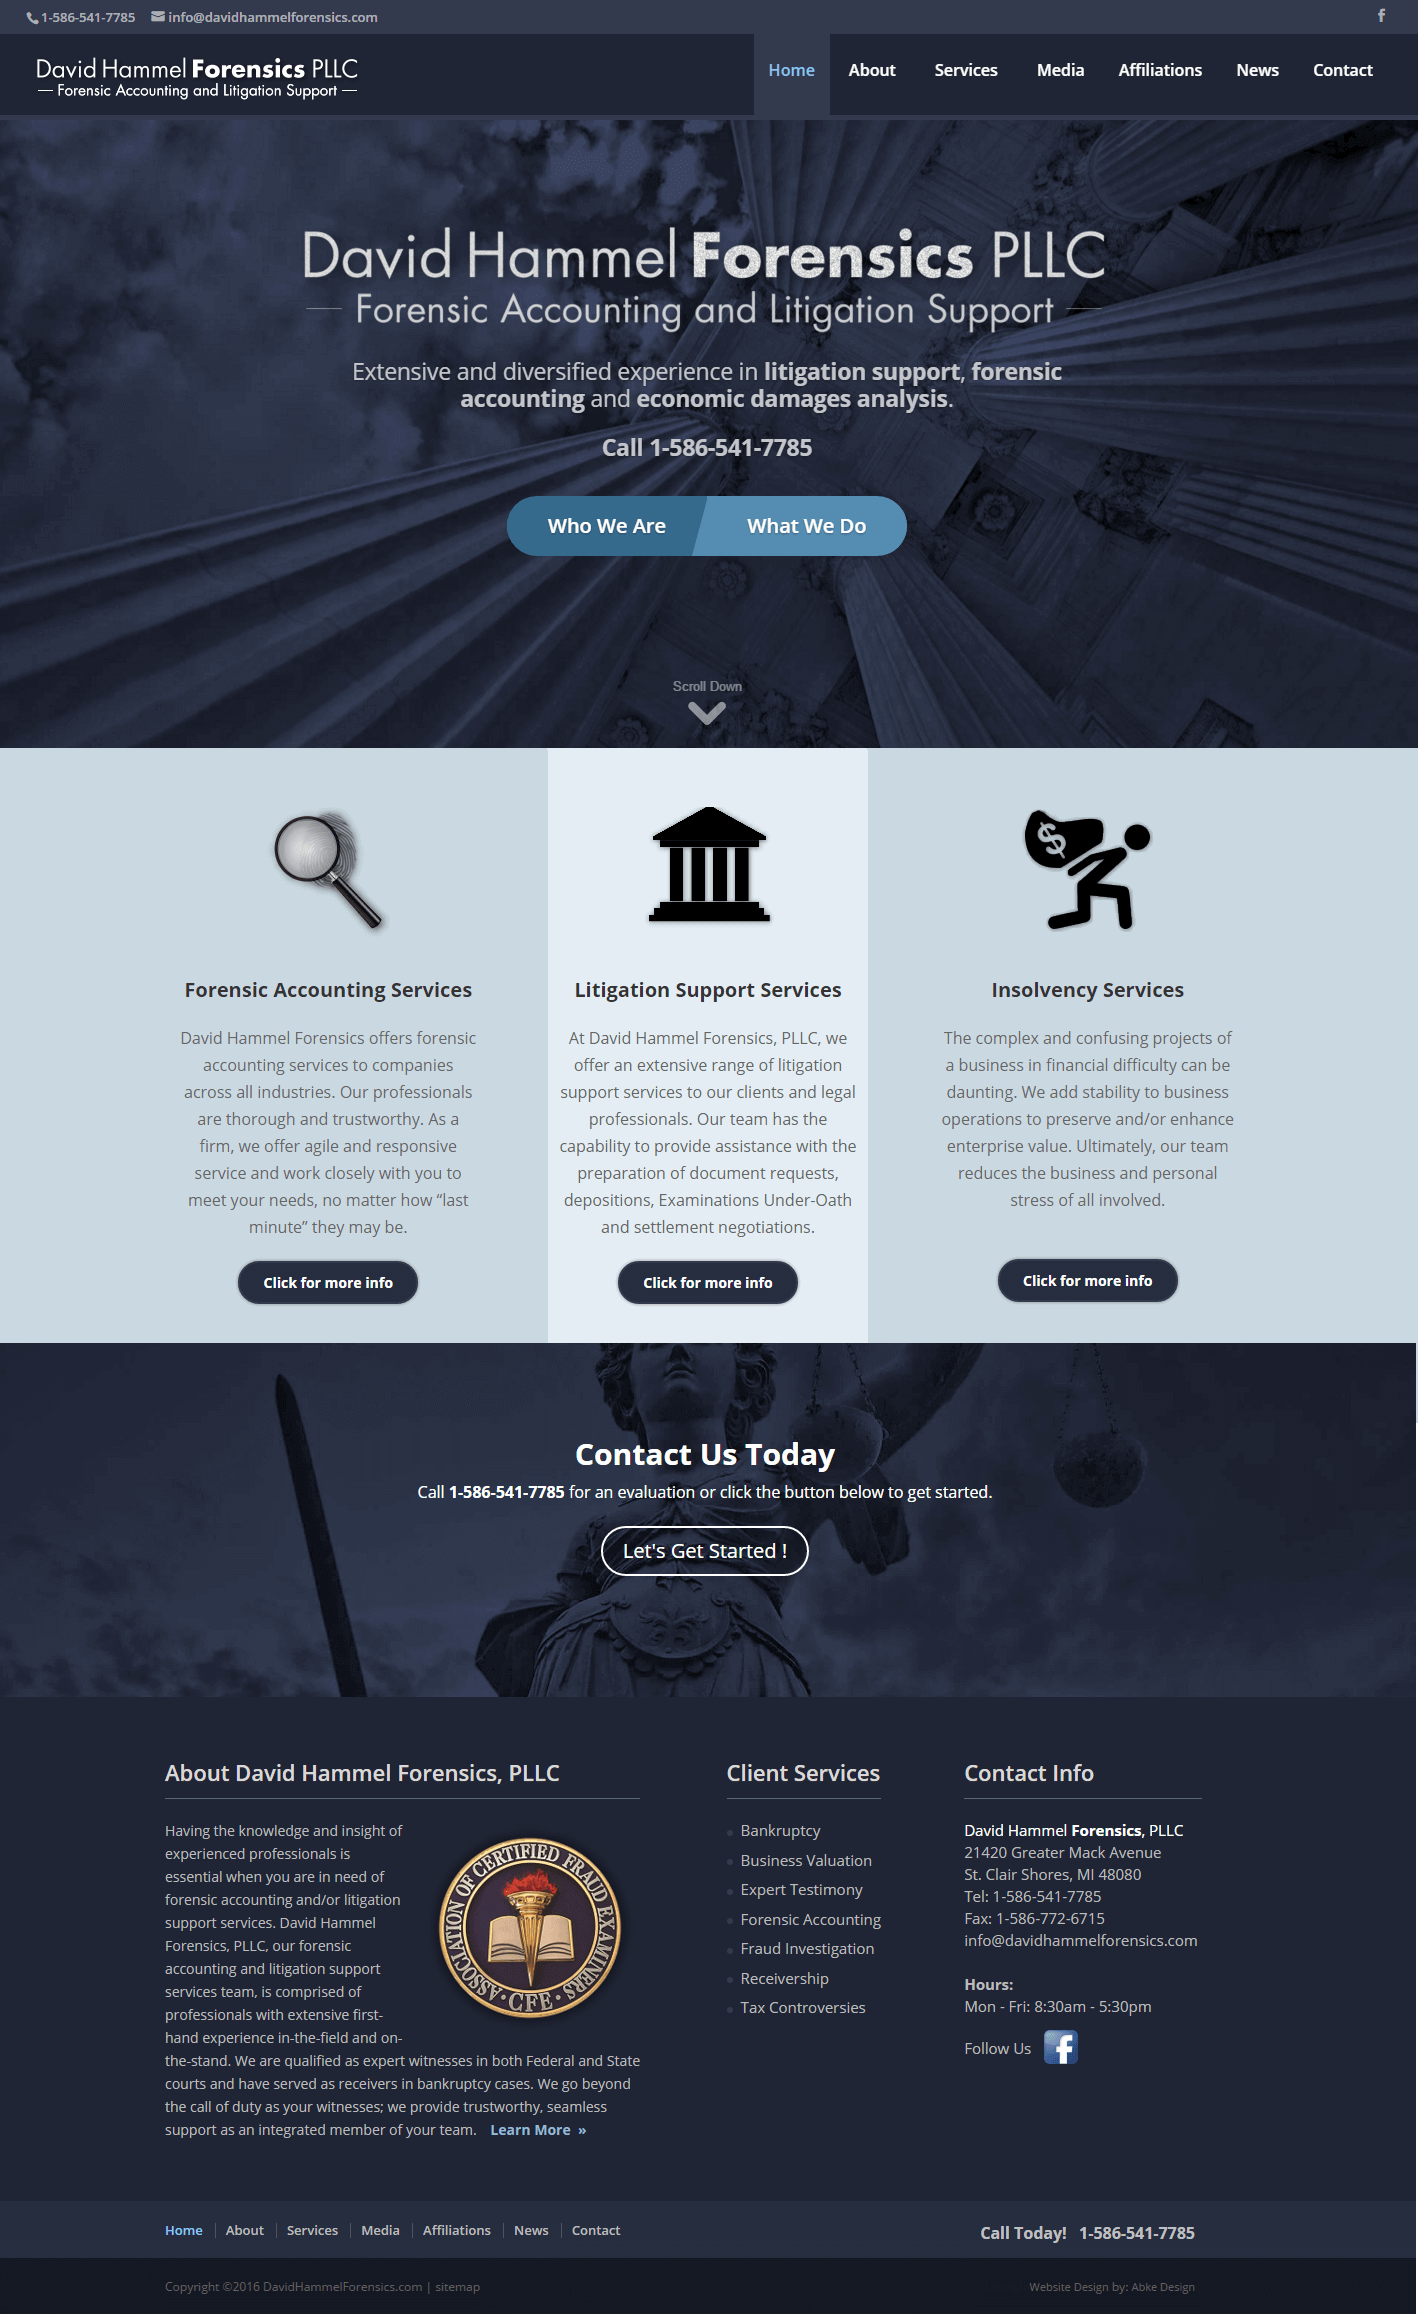 David Hammel Forensics - Website Design & Development by Abke Design